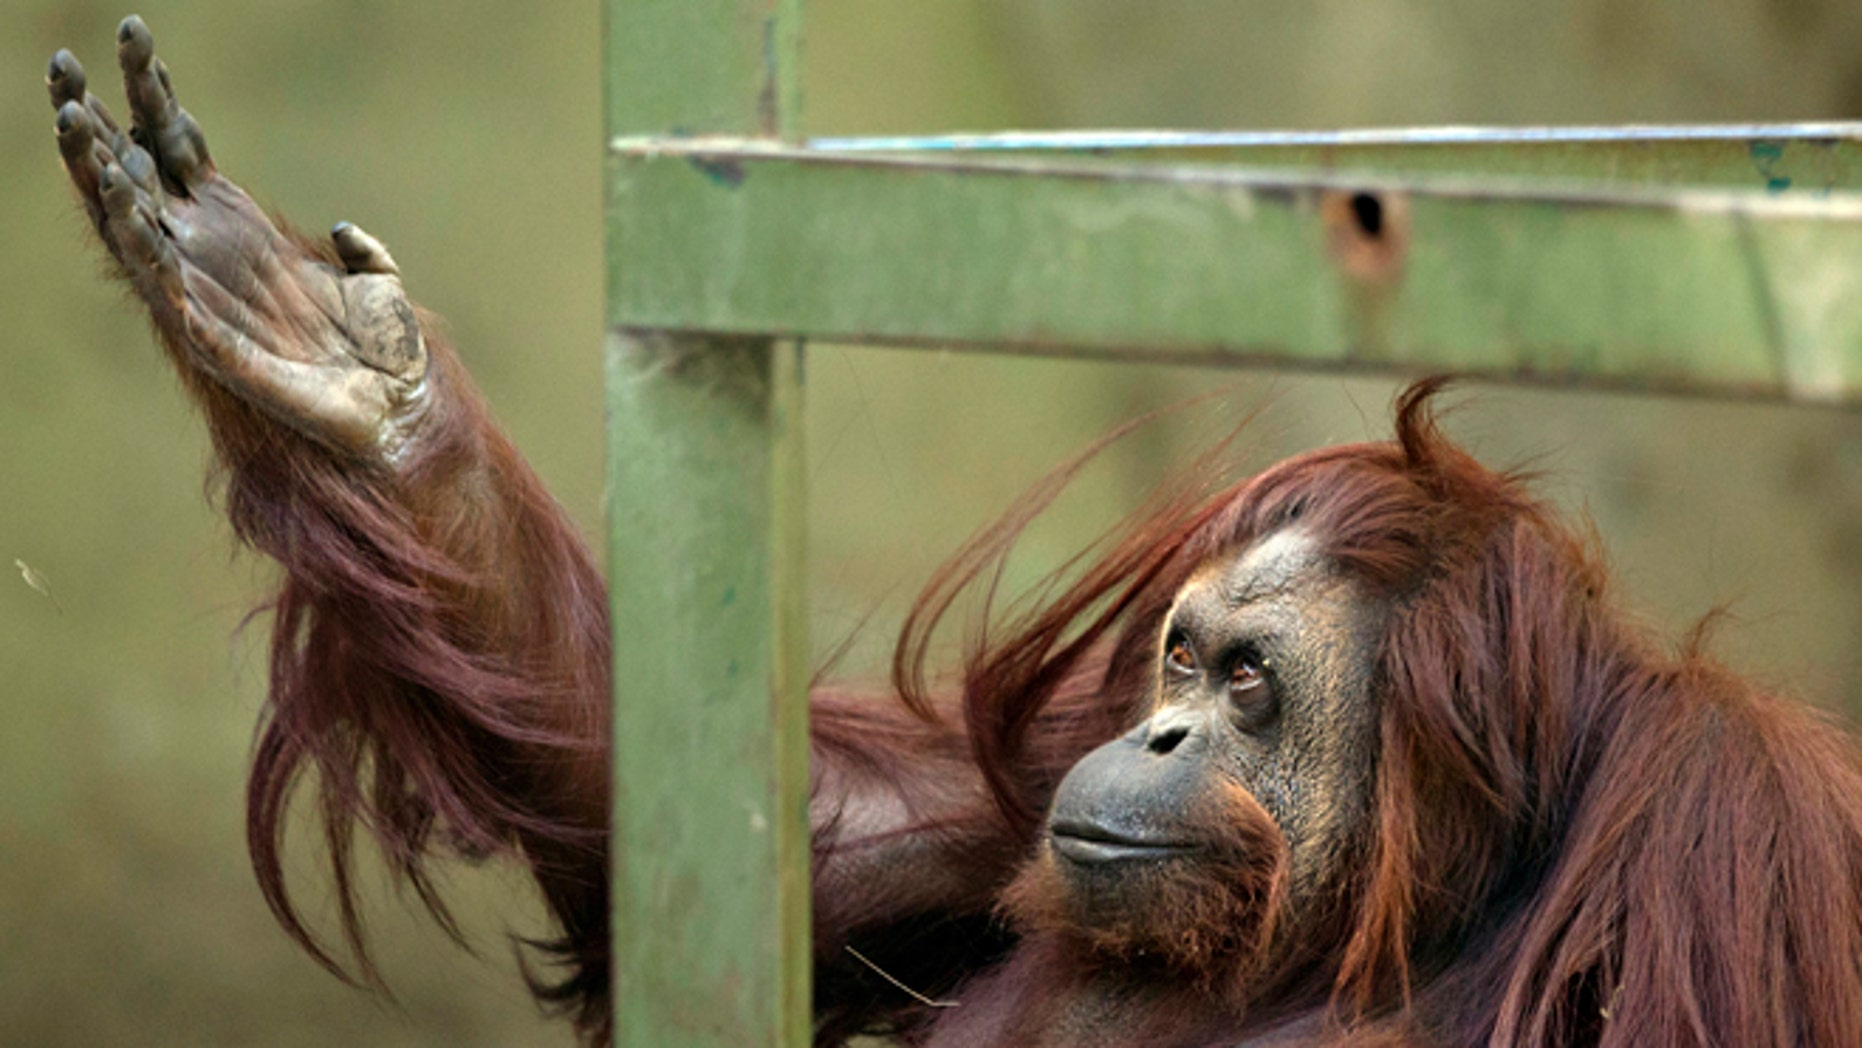 Sandra the orangutan sits in her enclosure at Buenos Aires' Zoo in Argentina.